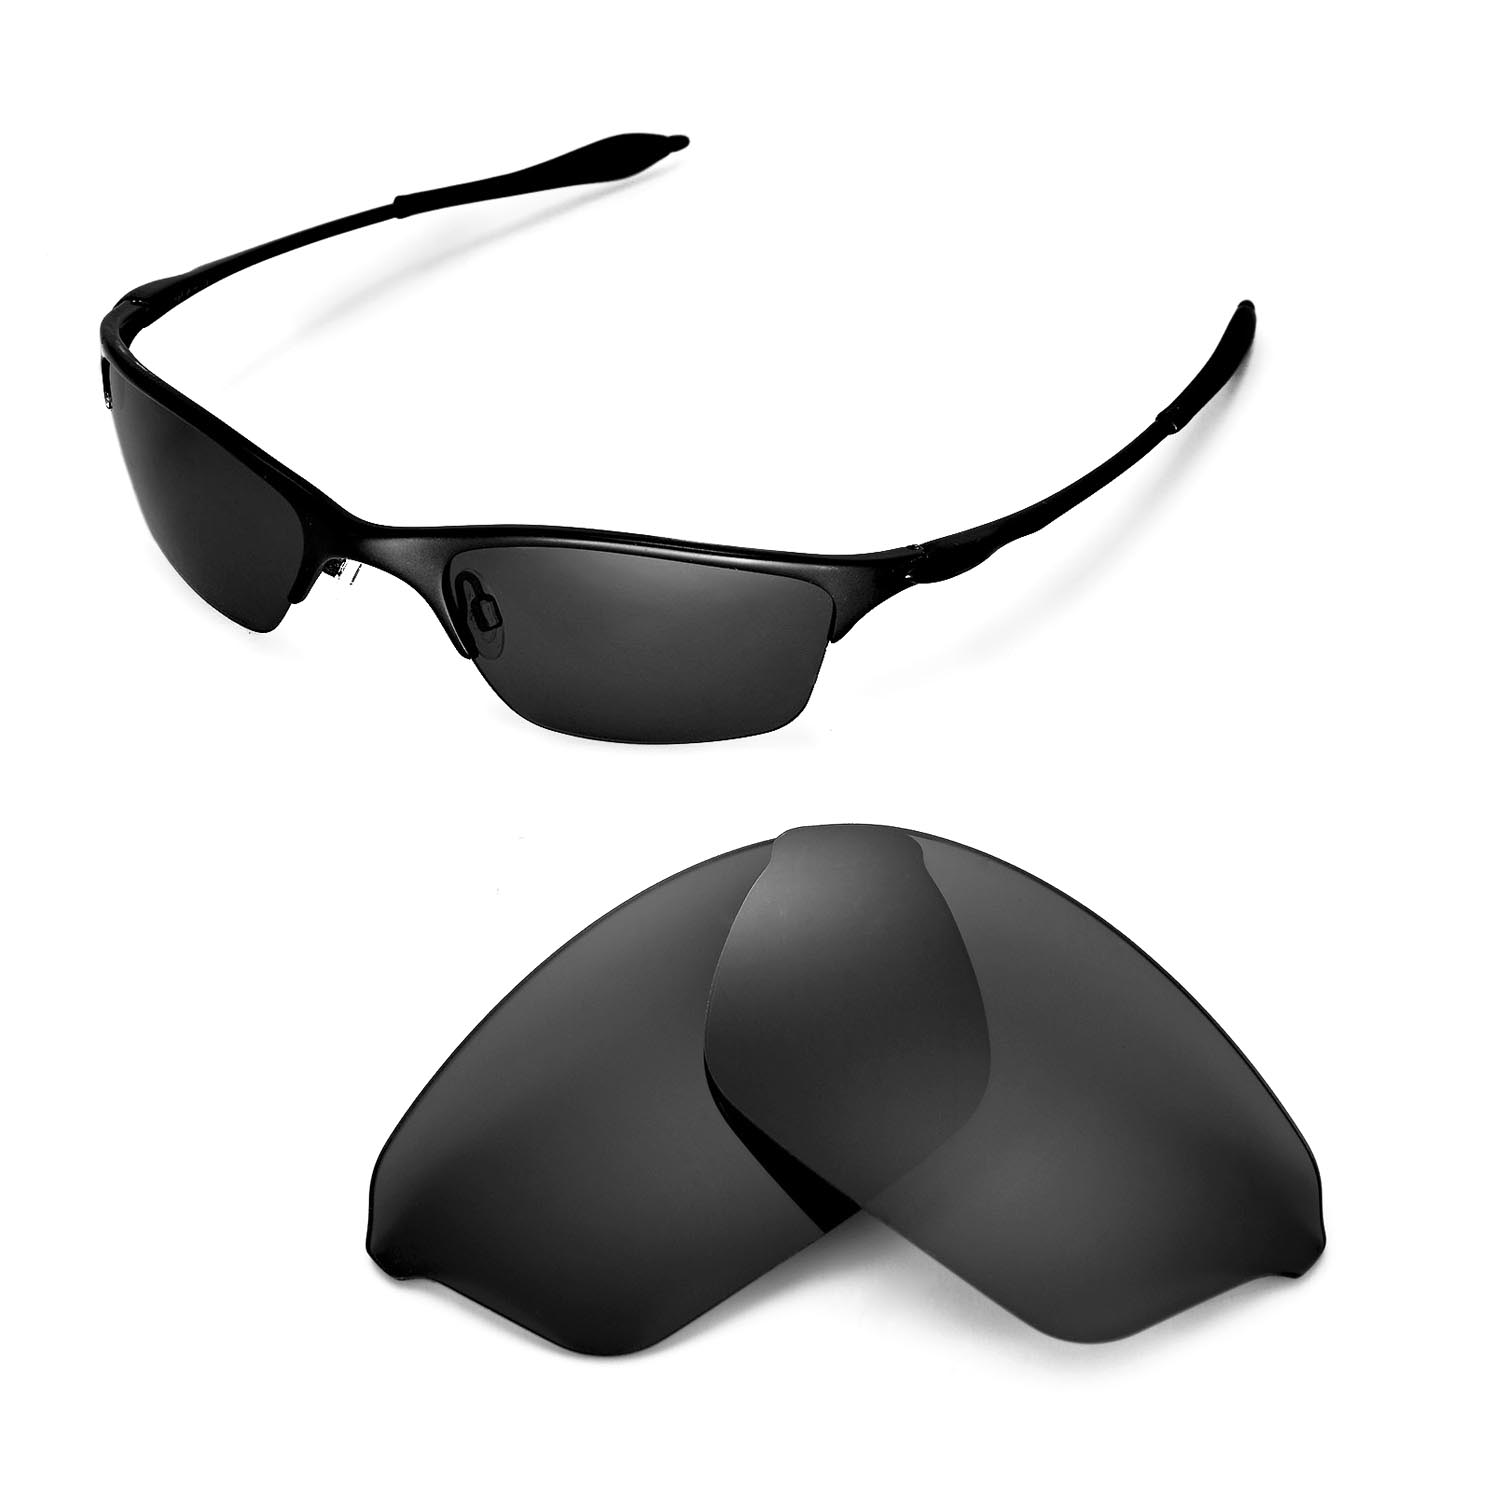 c138be47ba Details about New Walleva Polarized Black Replacement Lenses For Oakley  Half Wire XL